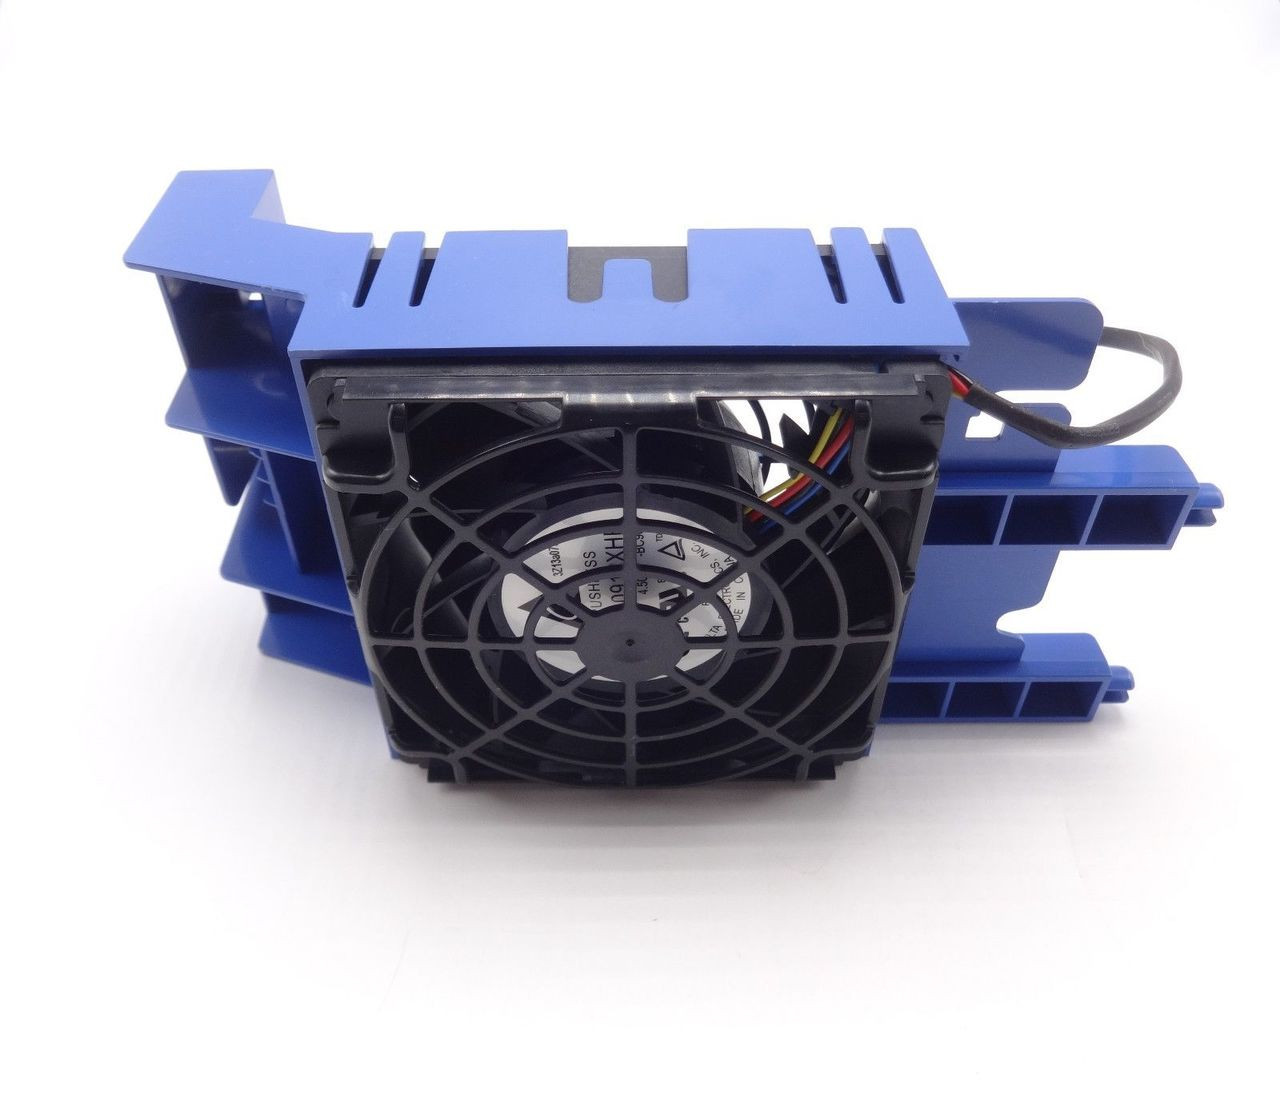 HP 746470-001 Fan 2-3 and holder assembly - Includes the blue plastic fan holder with 92mm x 38mm (3.62 inches x 1.50 inches) fan and cable - Mounts behind the hard drive cages